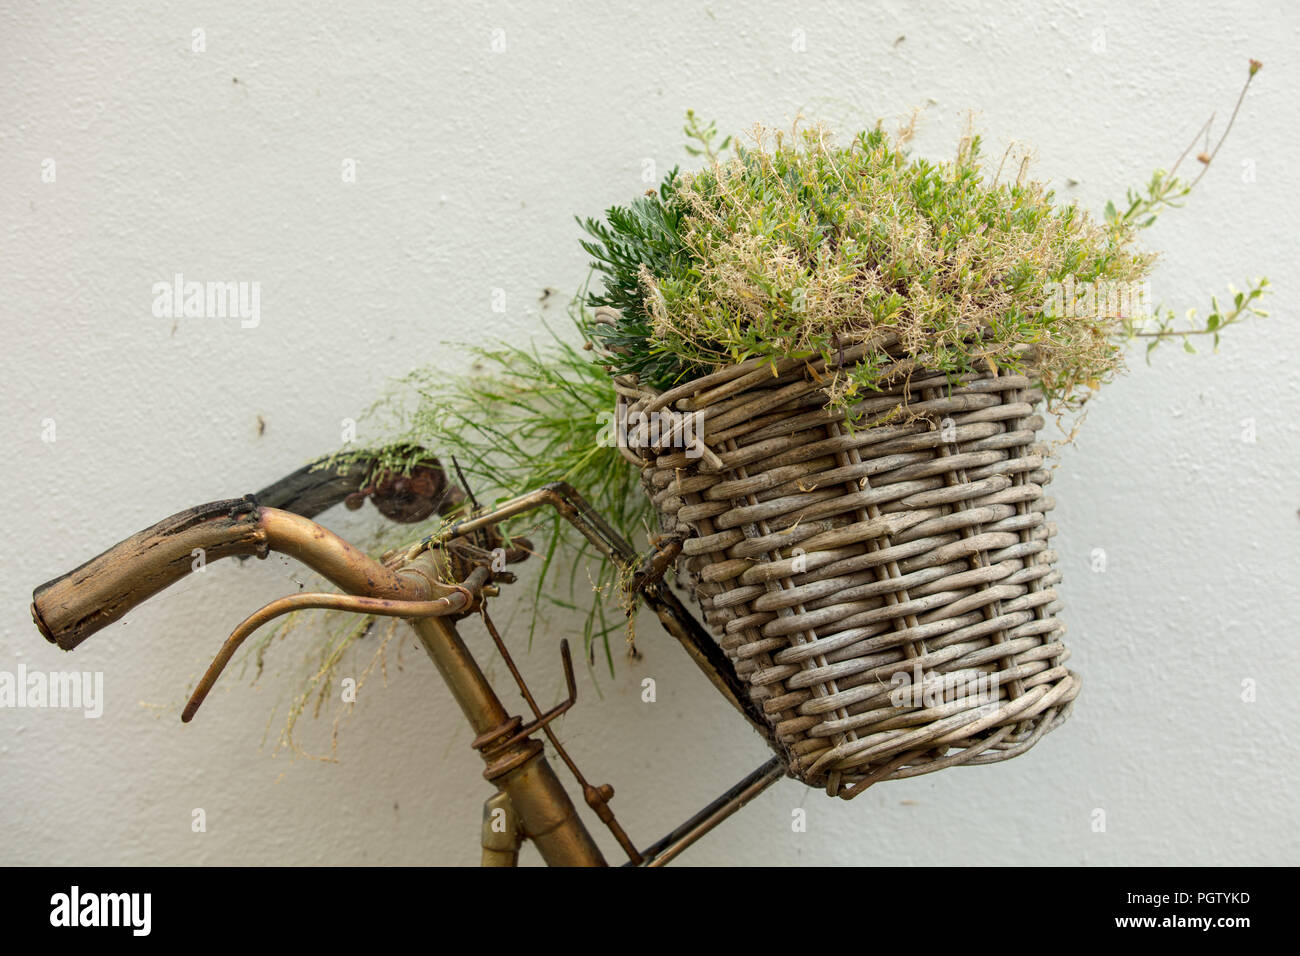 Creative use of a basket attached to a rusty bicycle, adding greenery, interest and talking point to a tiny front garden in old Hastings. East Sussex. - Stock Image